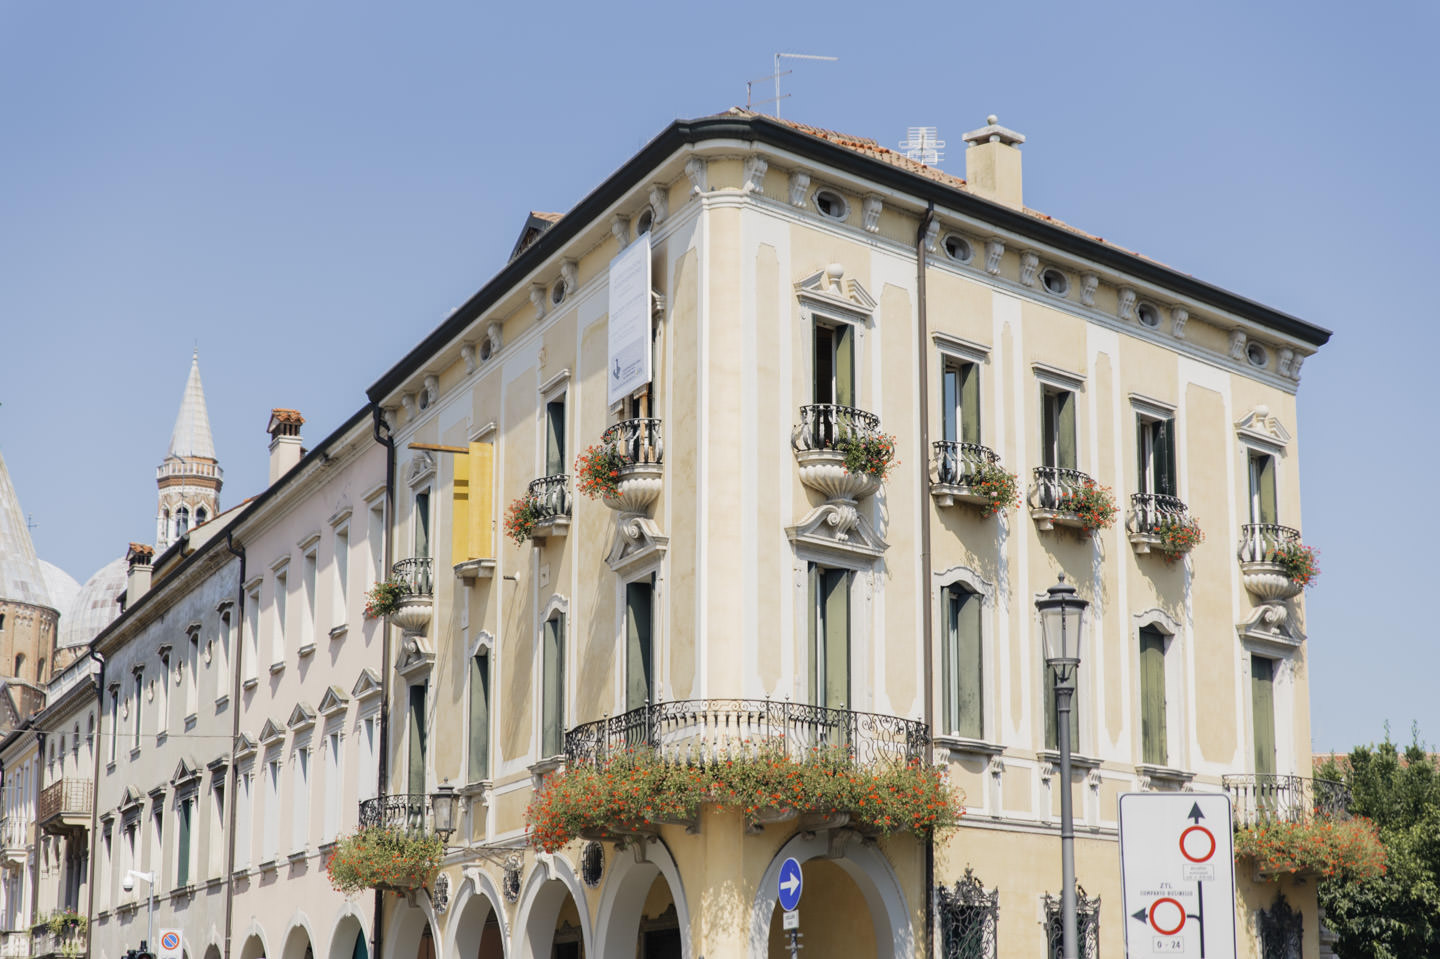 Blog-Mode-And-The-City-Lifestyle-Voyage-Italie-Trieste-Padoue-lac-Come-Verone-11